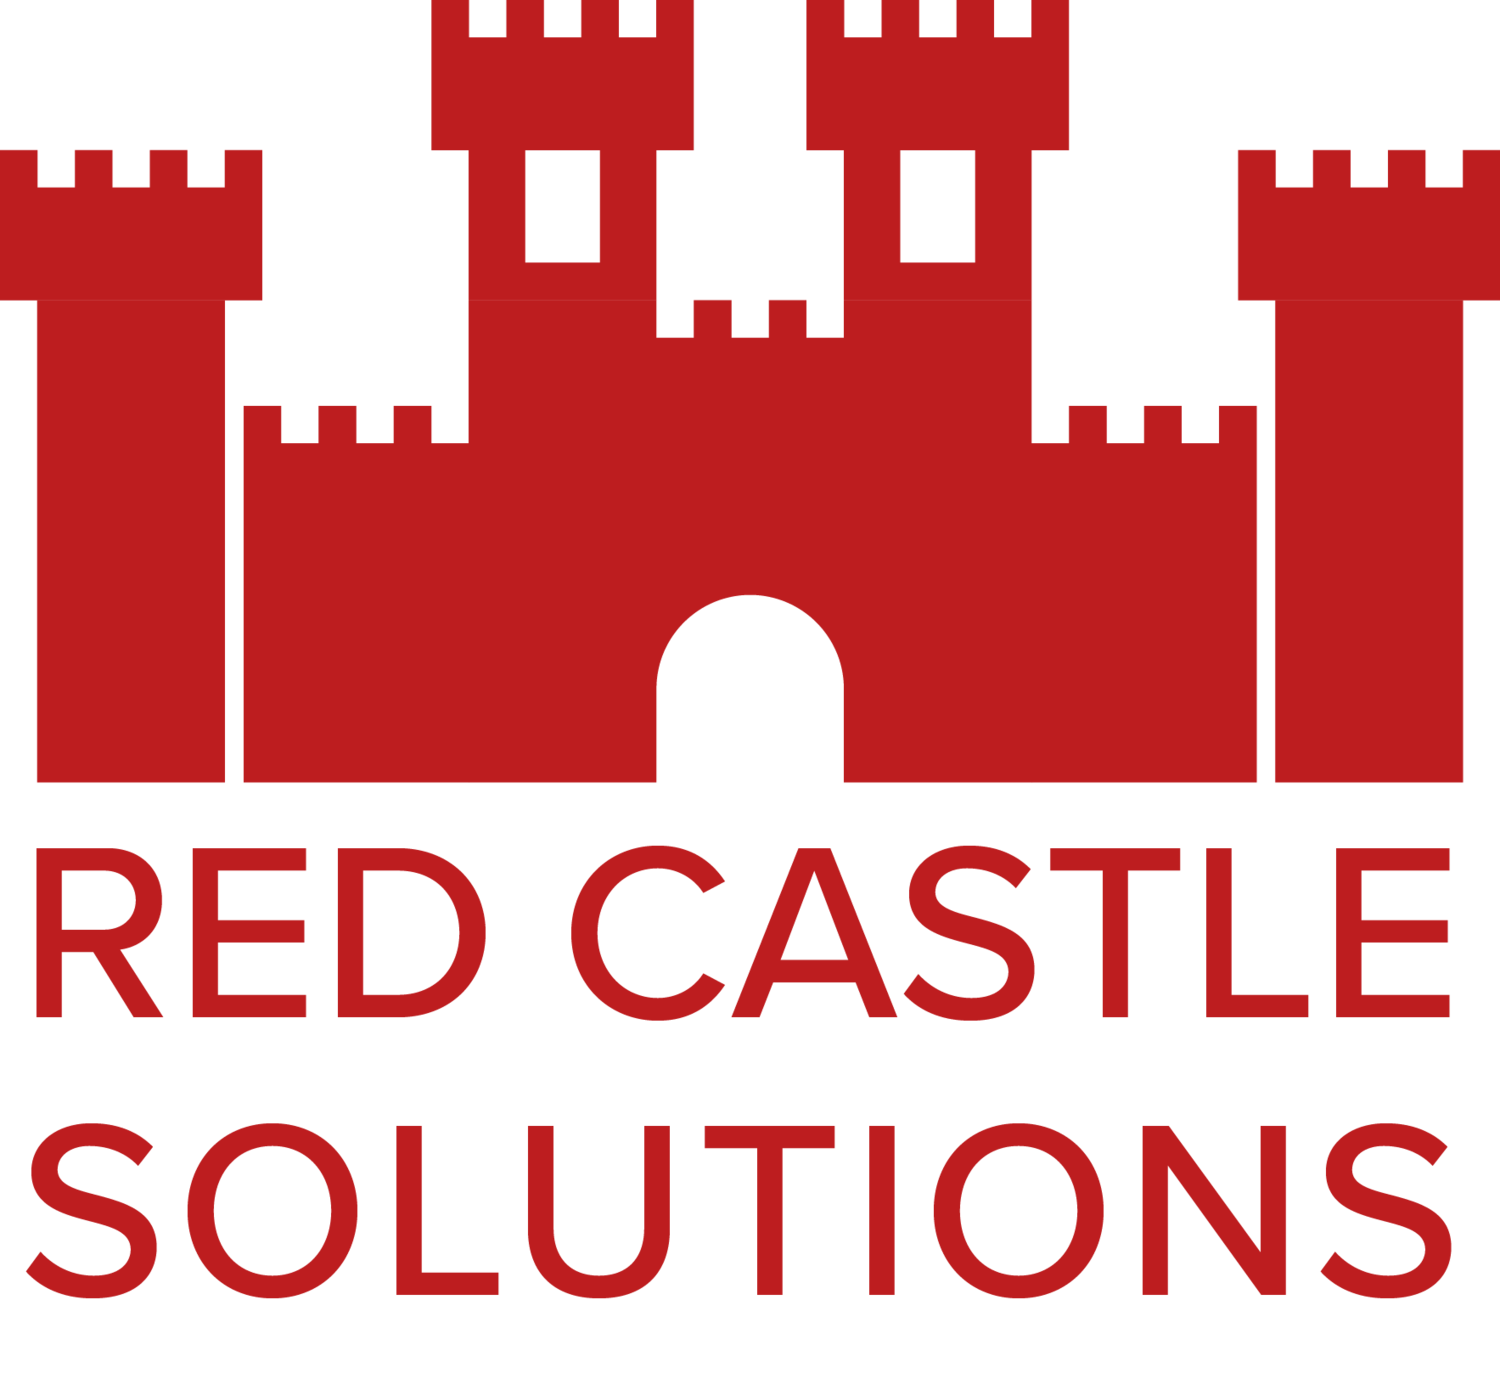 Red Castle Solutions, LLC